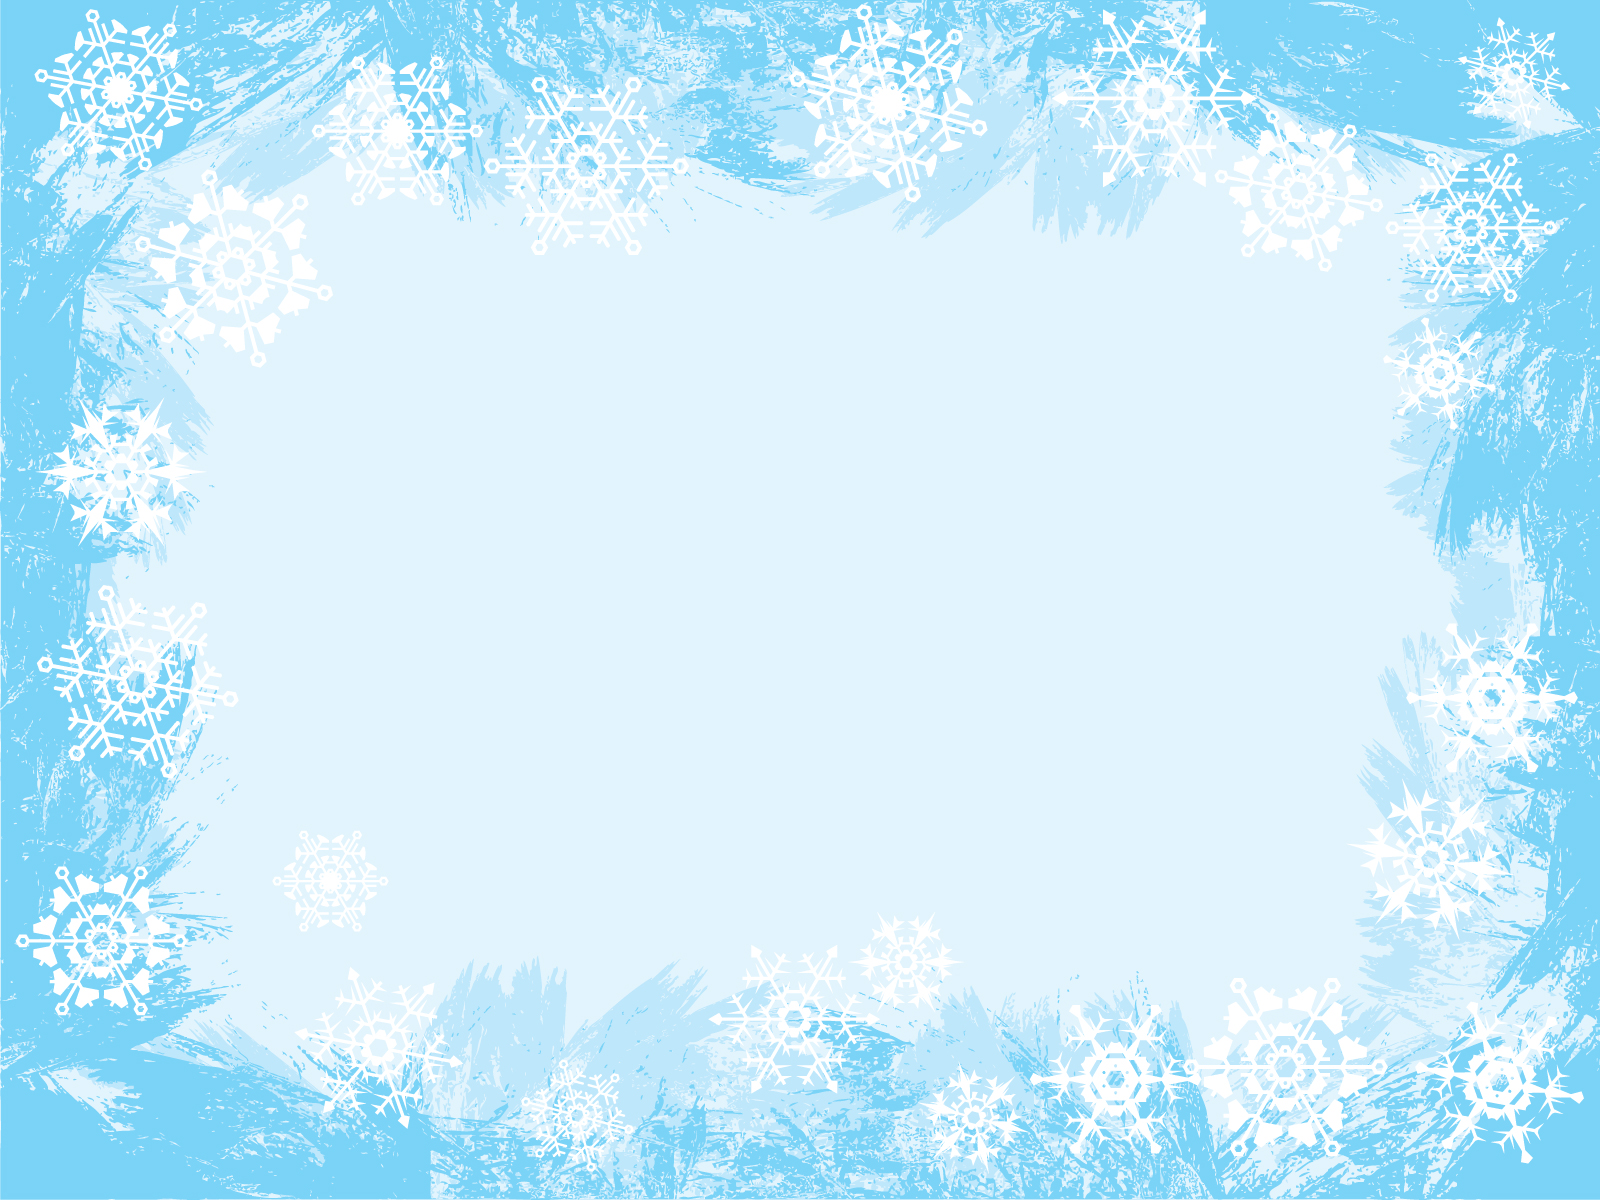 Light blue snowflake frame backgrounds border